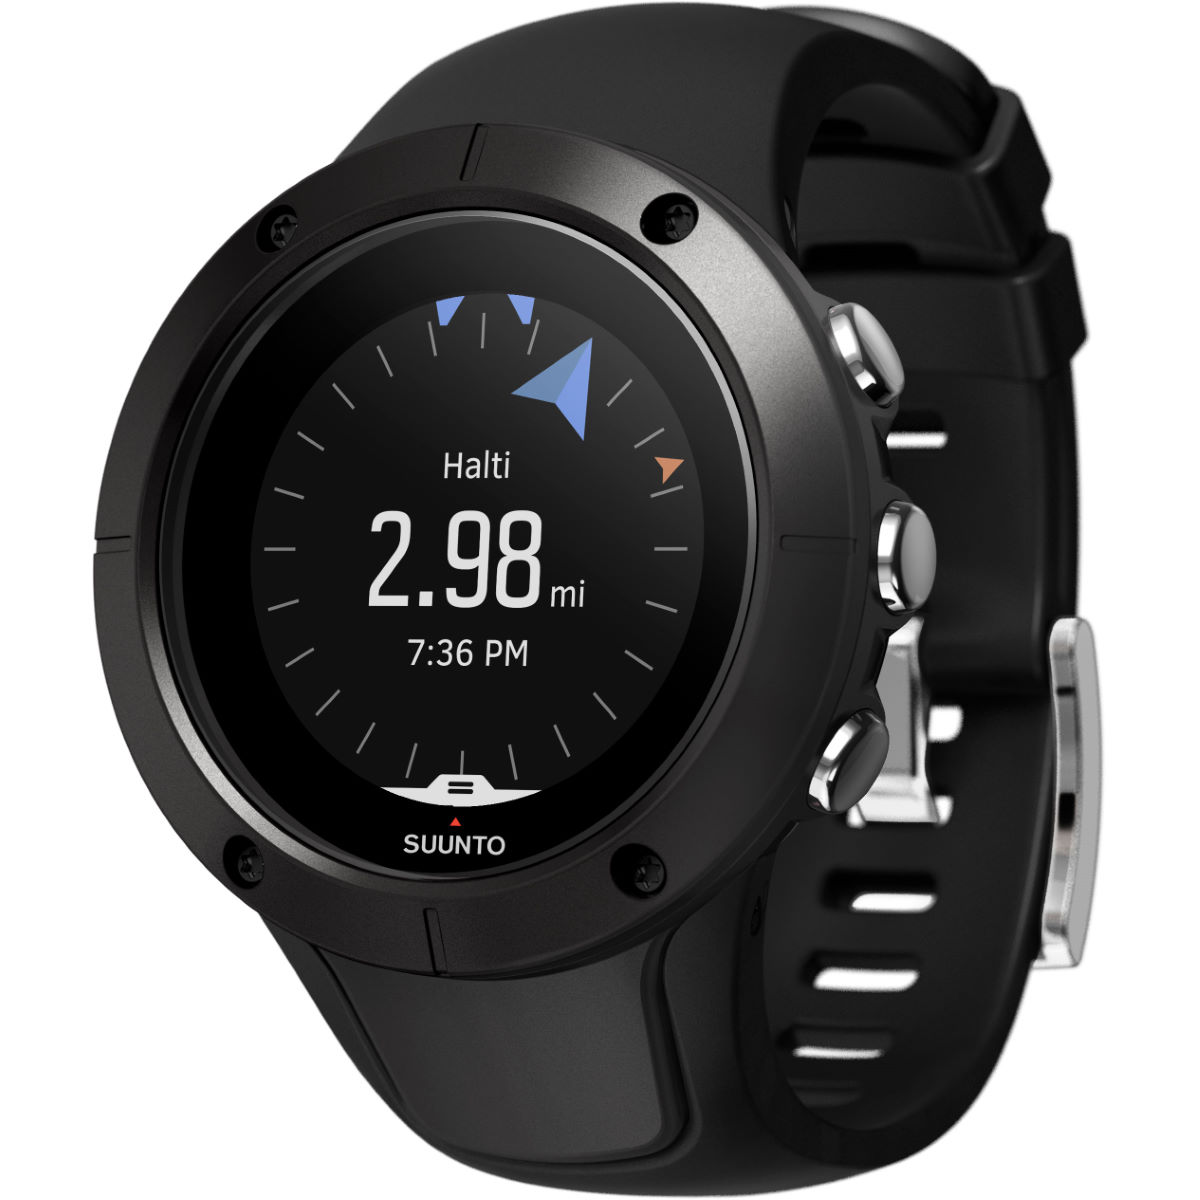 GPS watch Suunto Spartan Trainer (with heart rate monitor) - GPS heart rate monitors